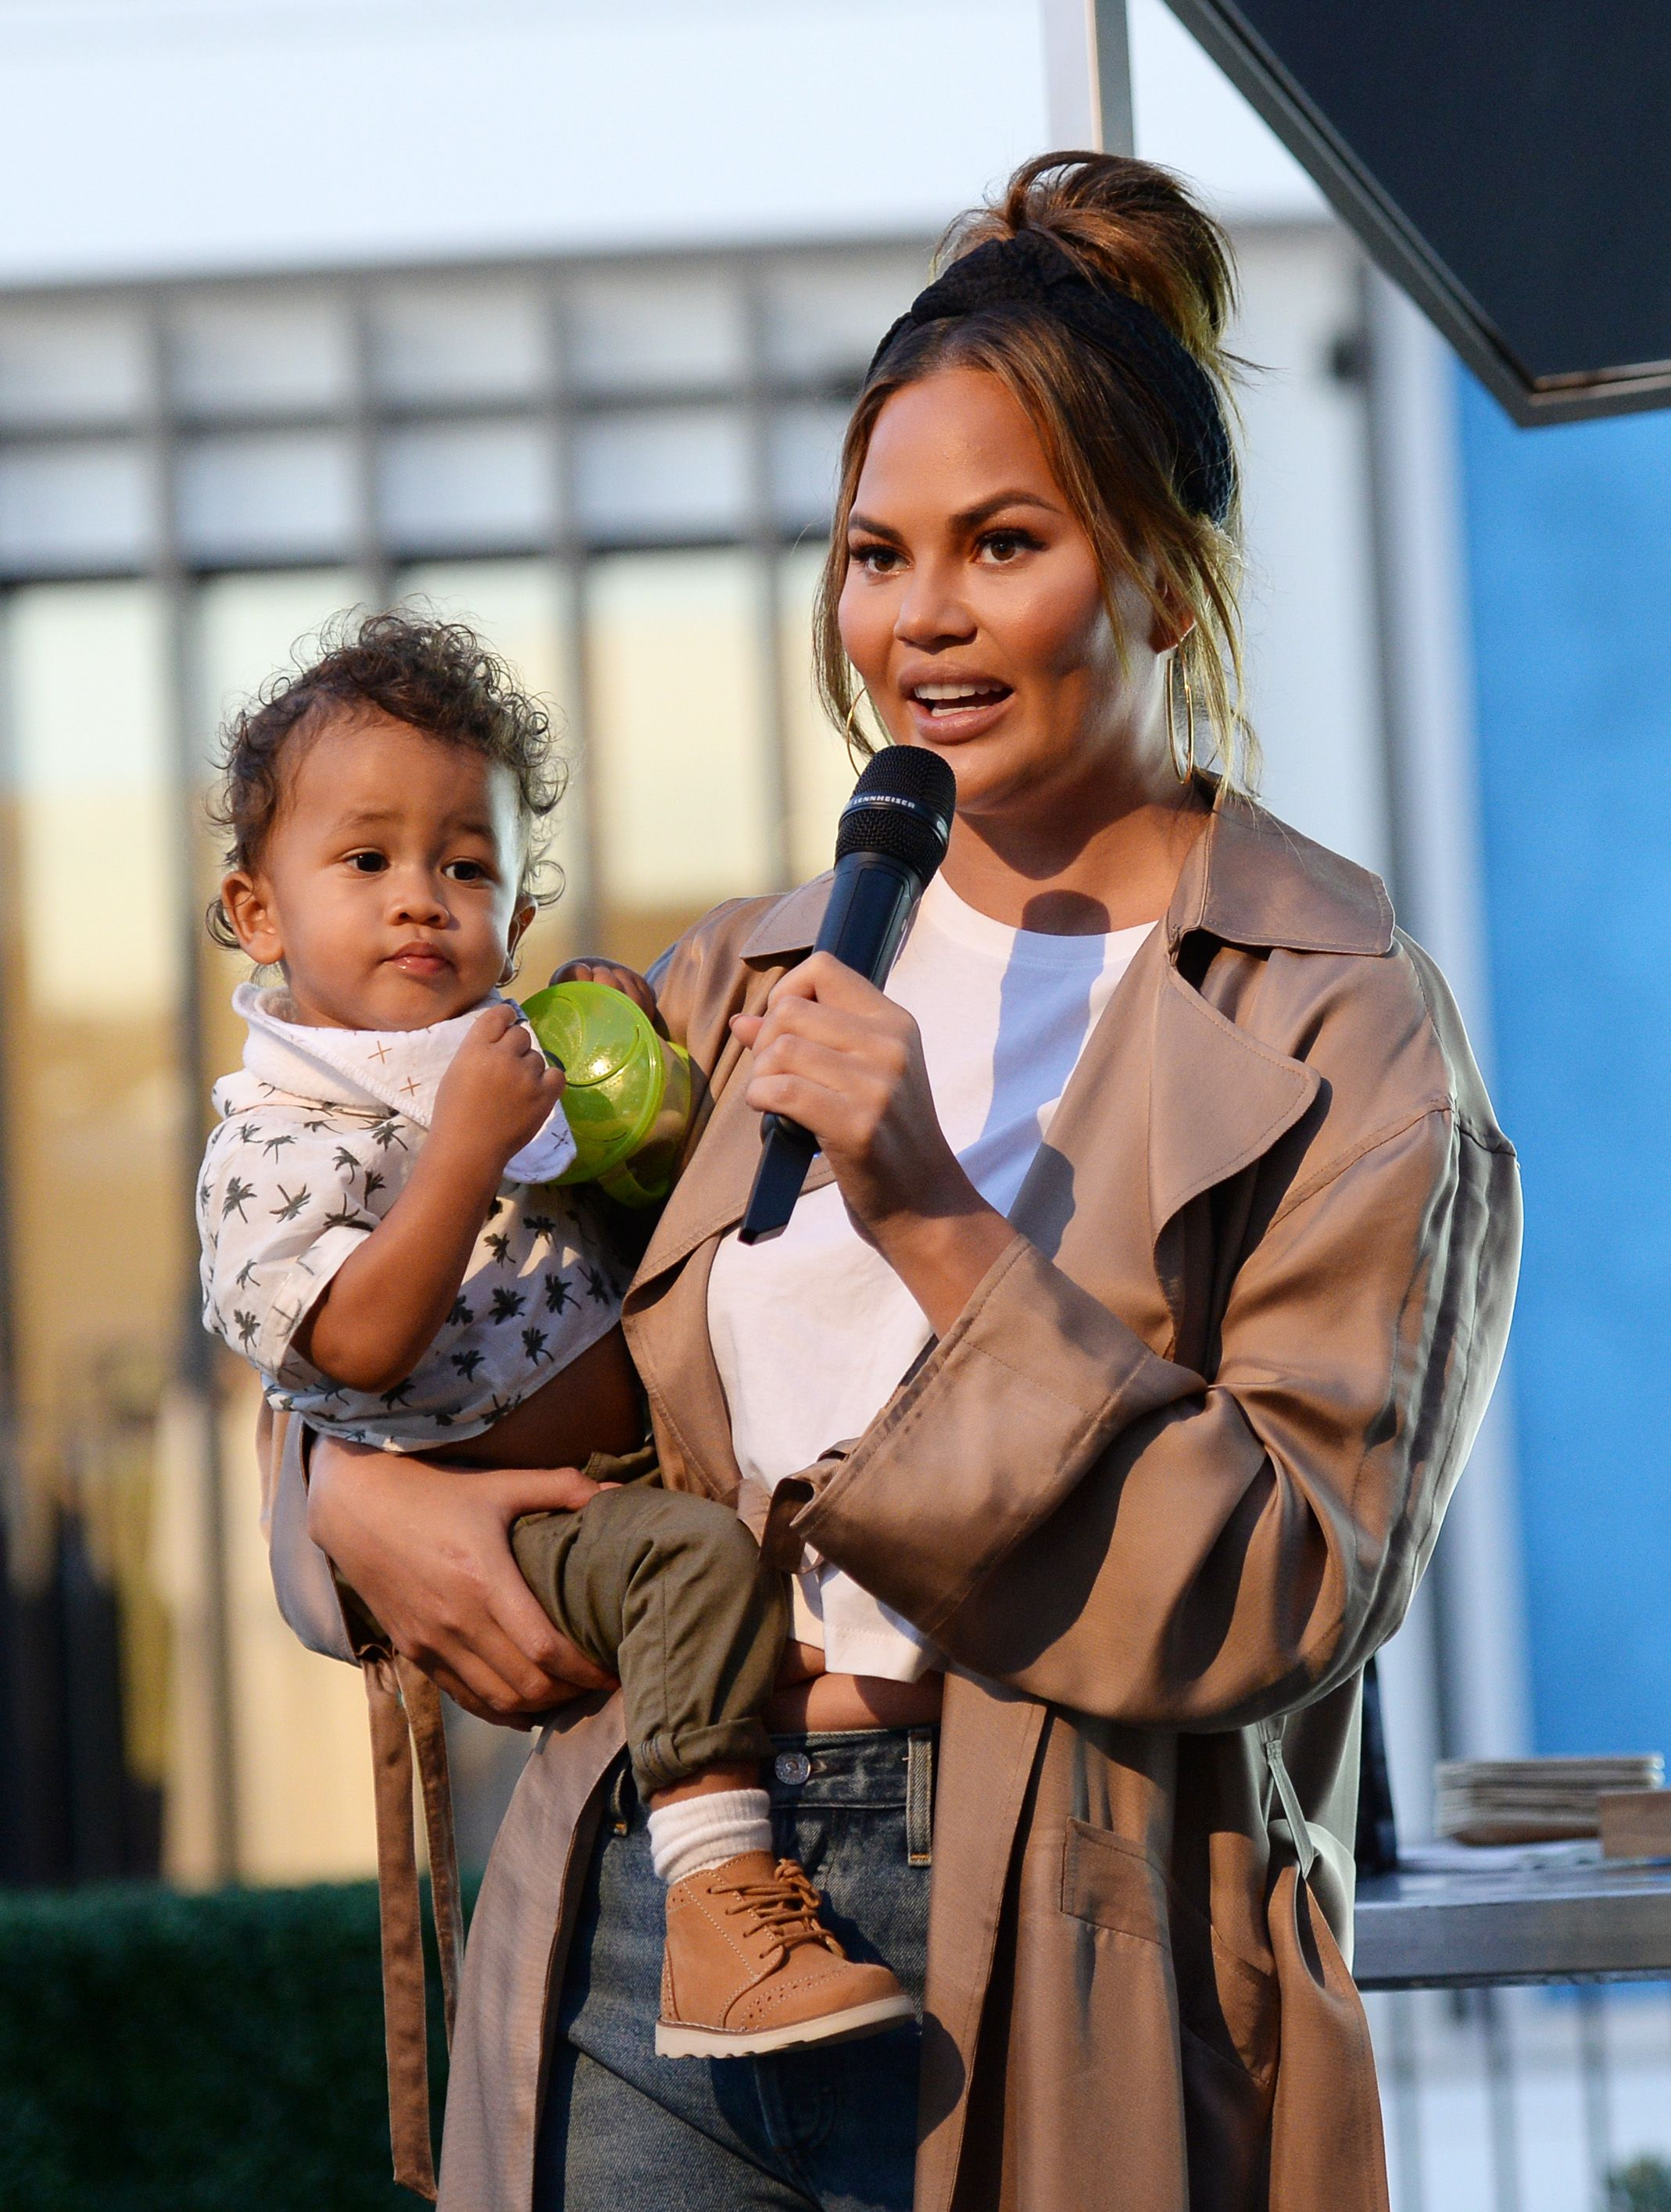 Chrissy Teigen Dug Out Luna's Iconic Hot Dog Costume For Little Brother Miles